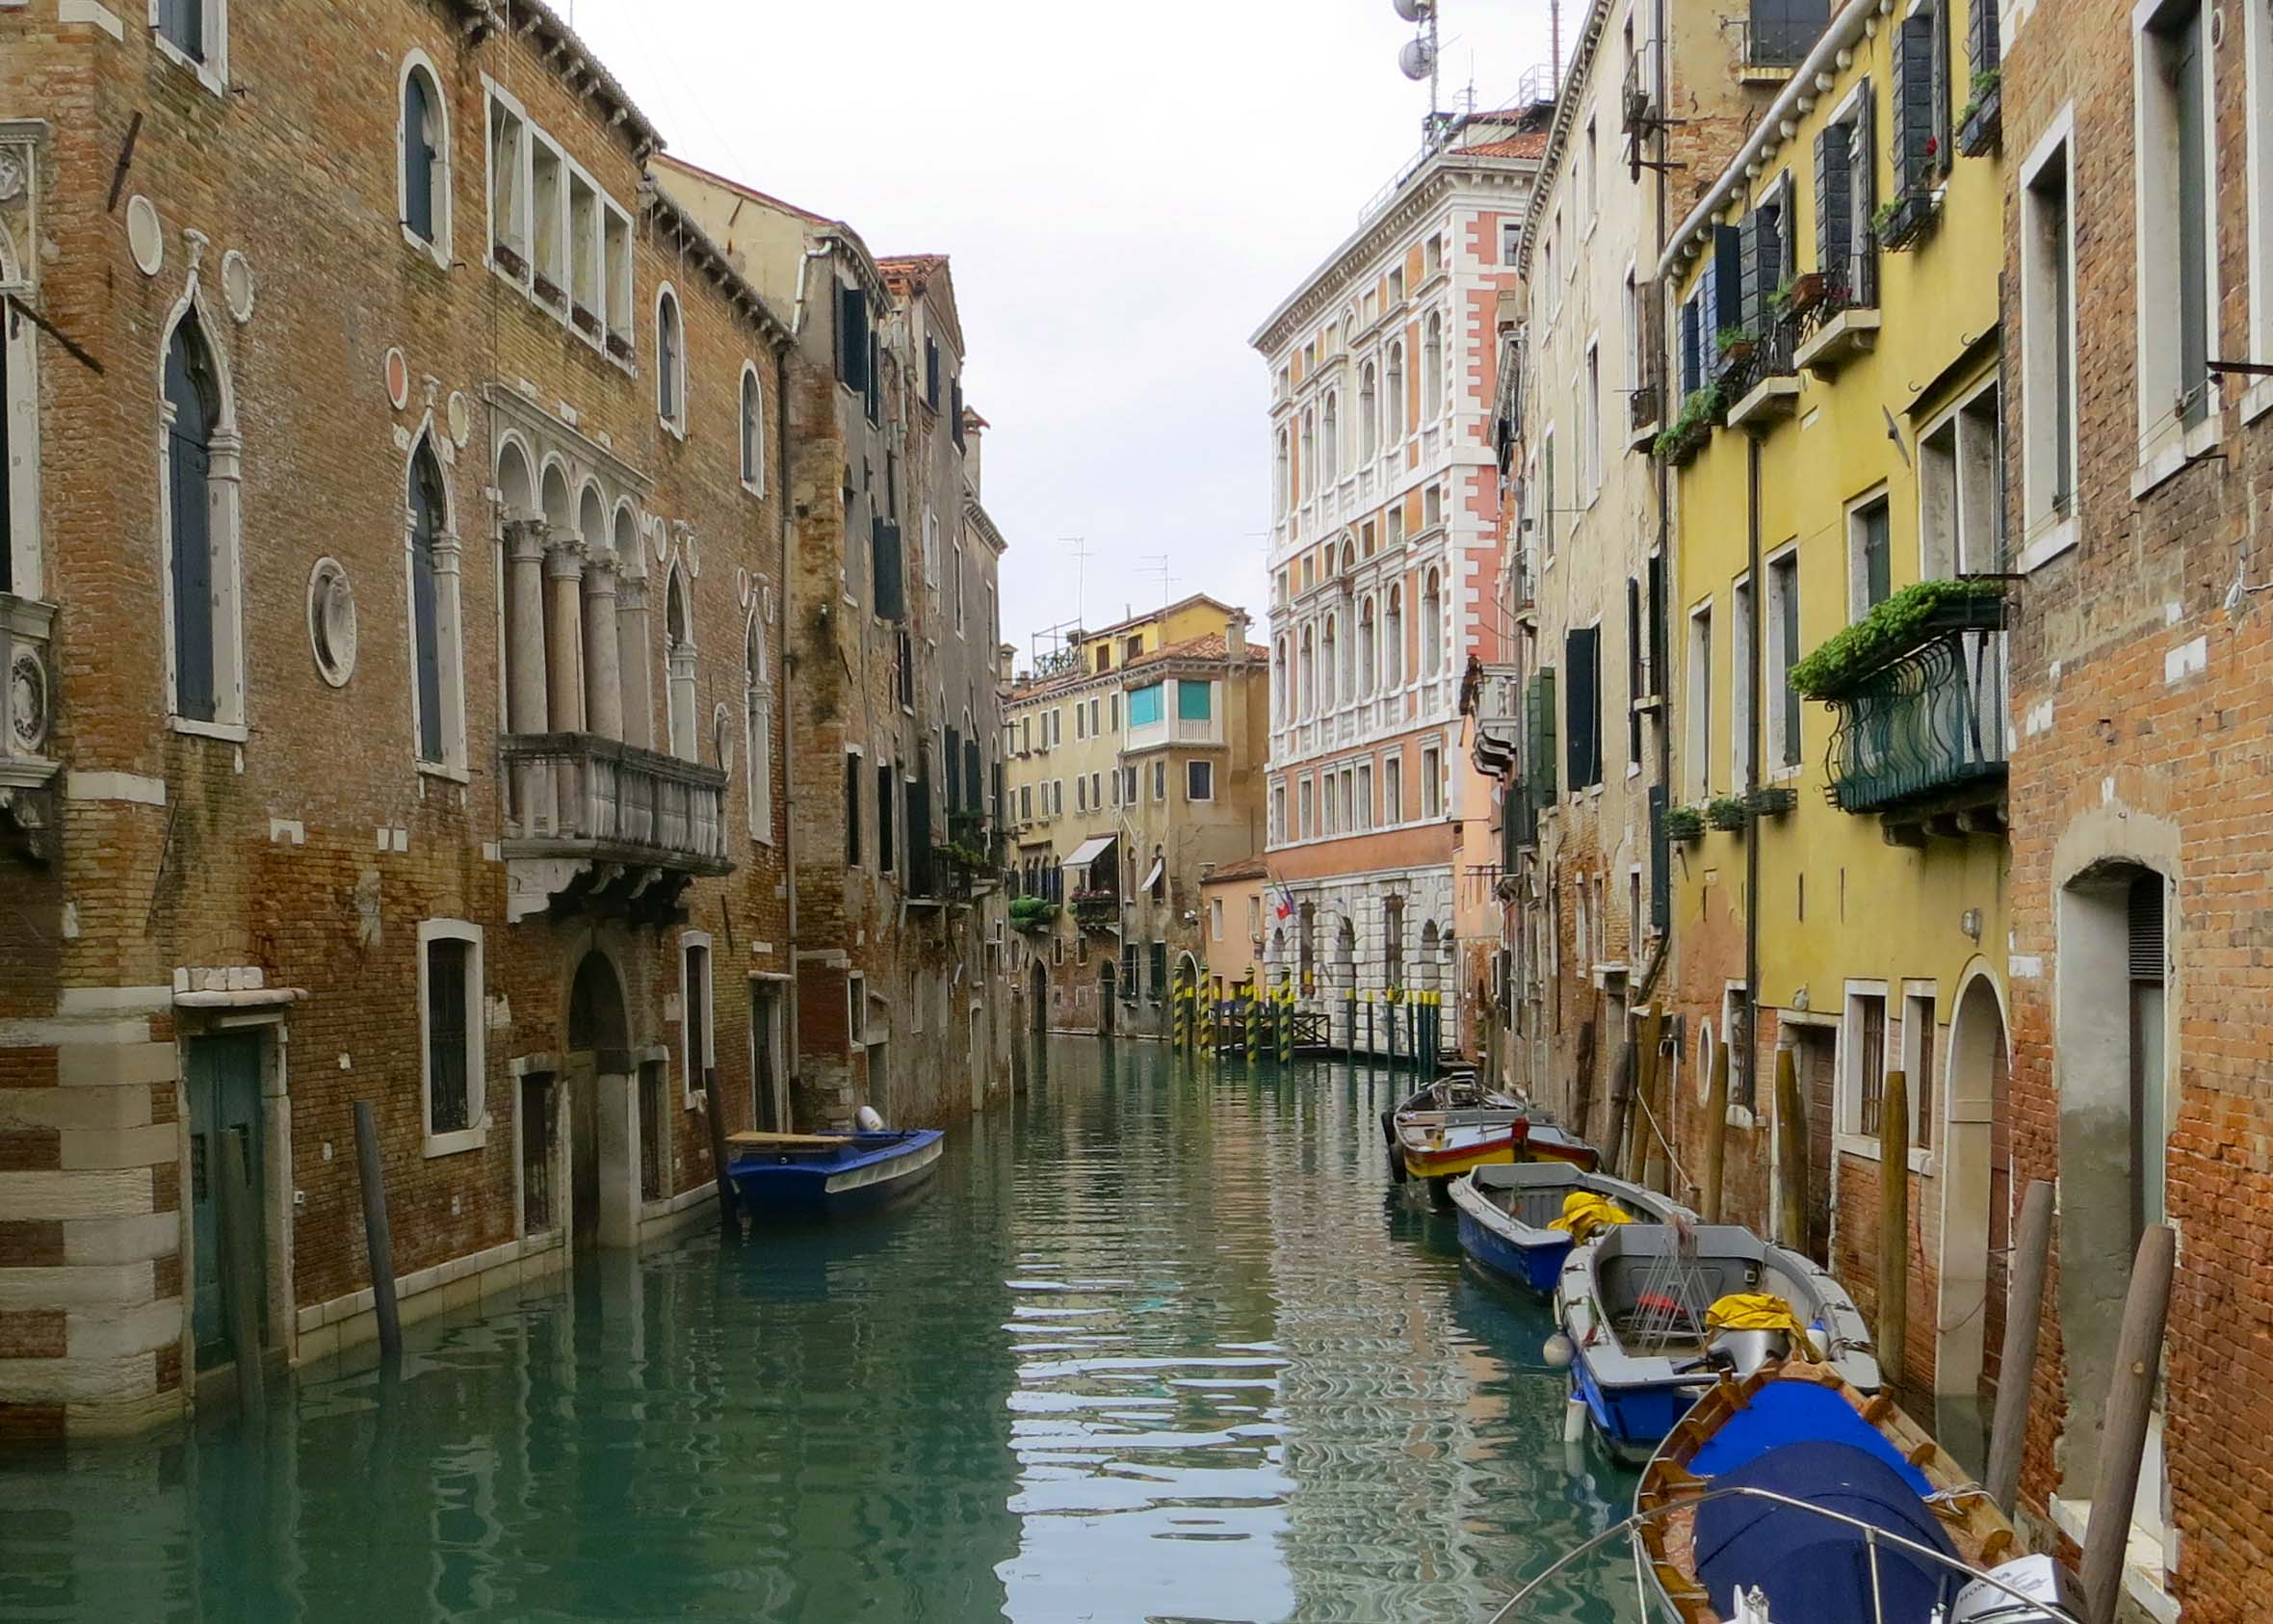 Mediterranean Decor Canals Of Venice Wandering Through Time And Place